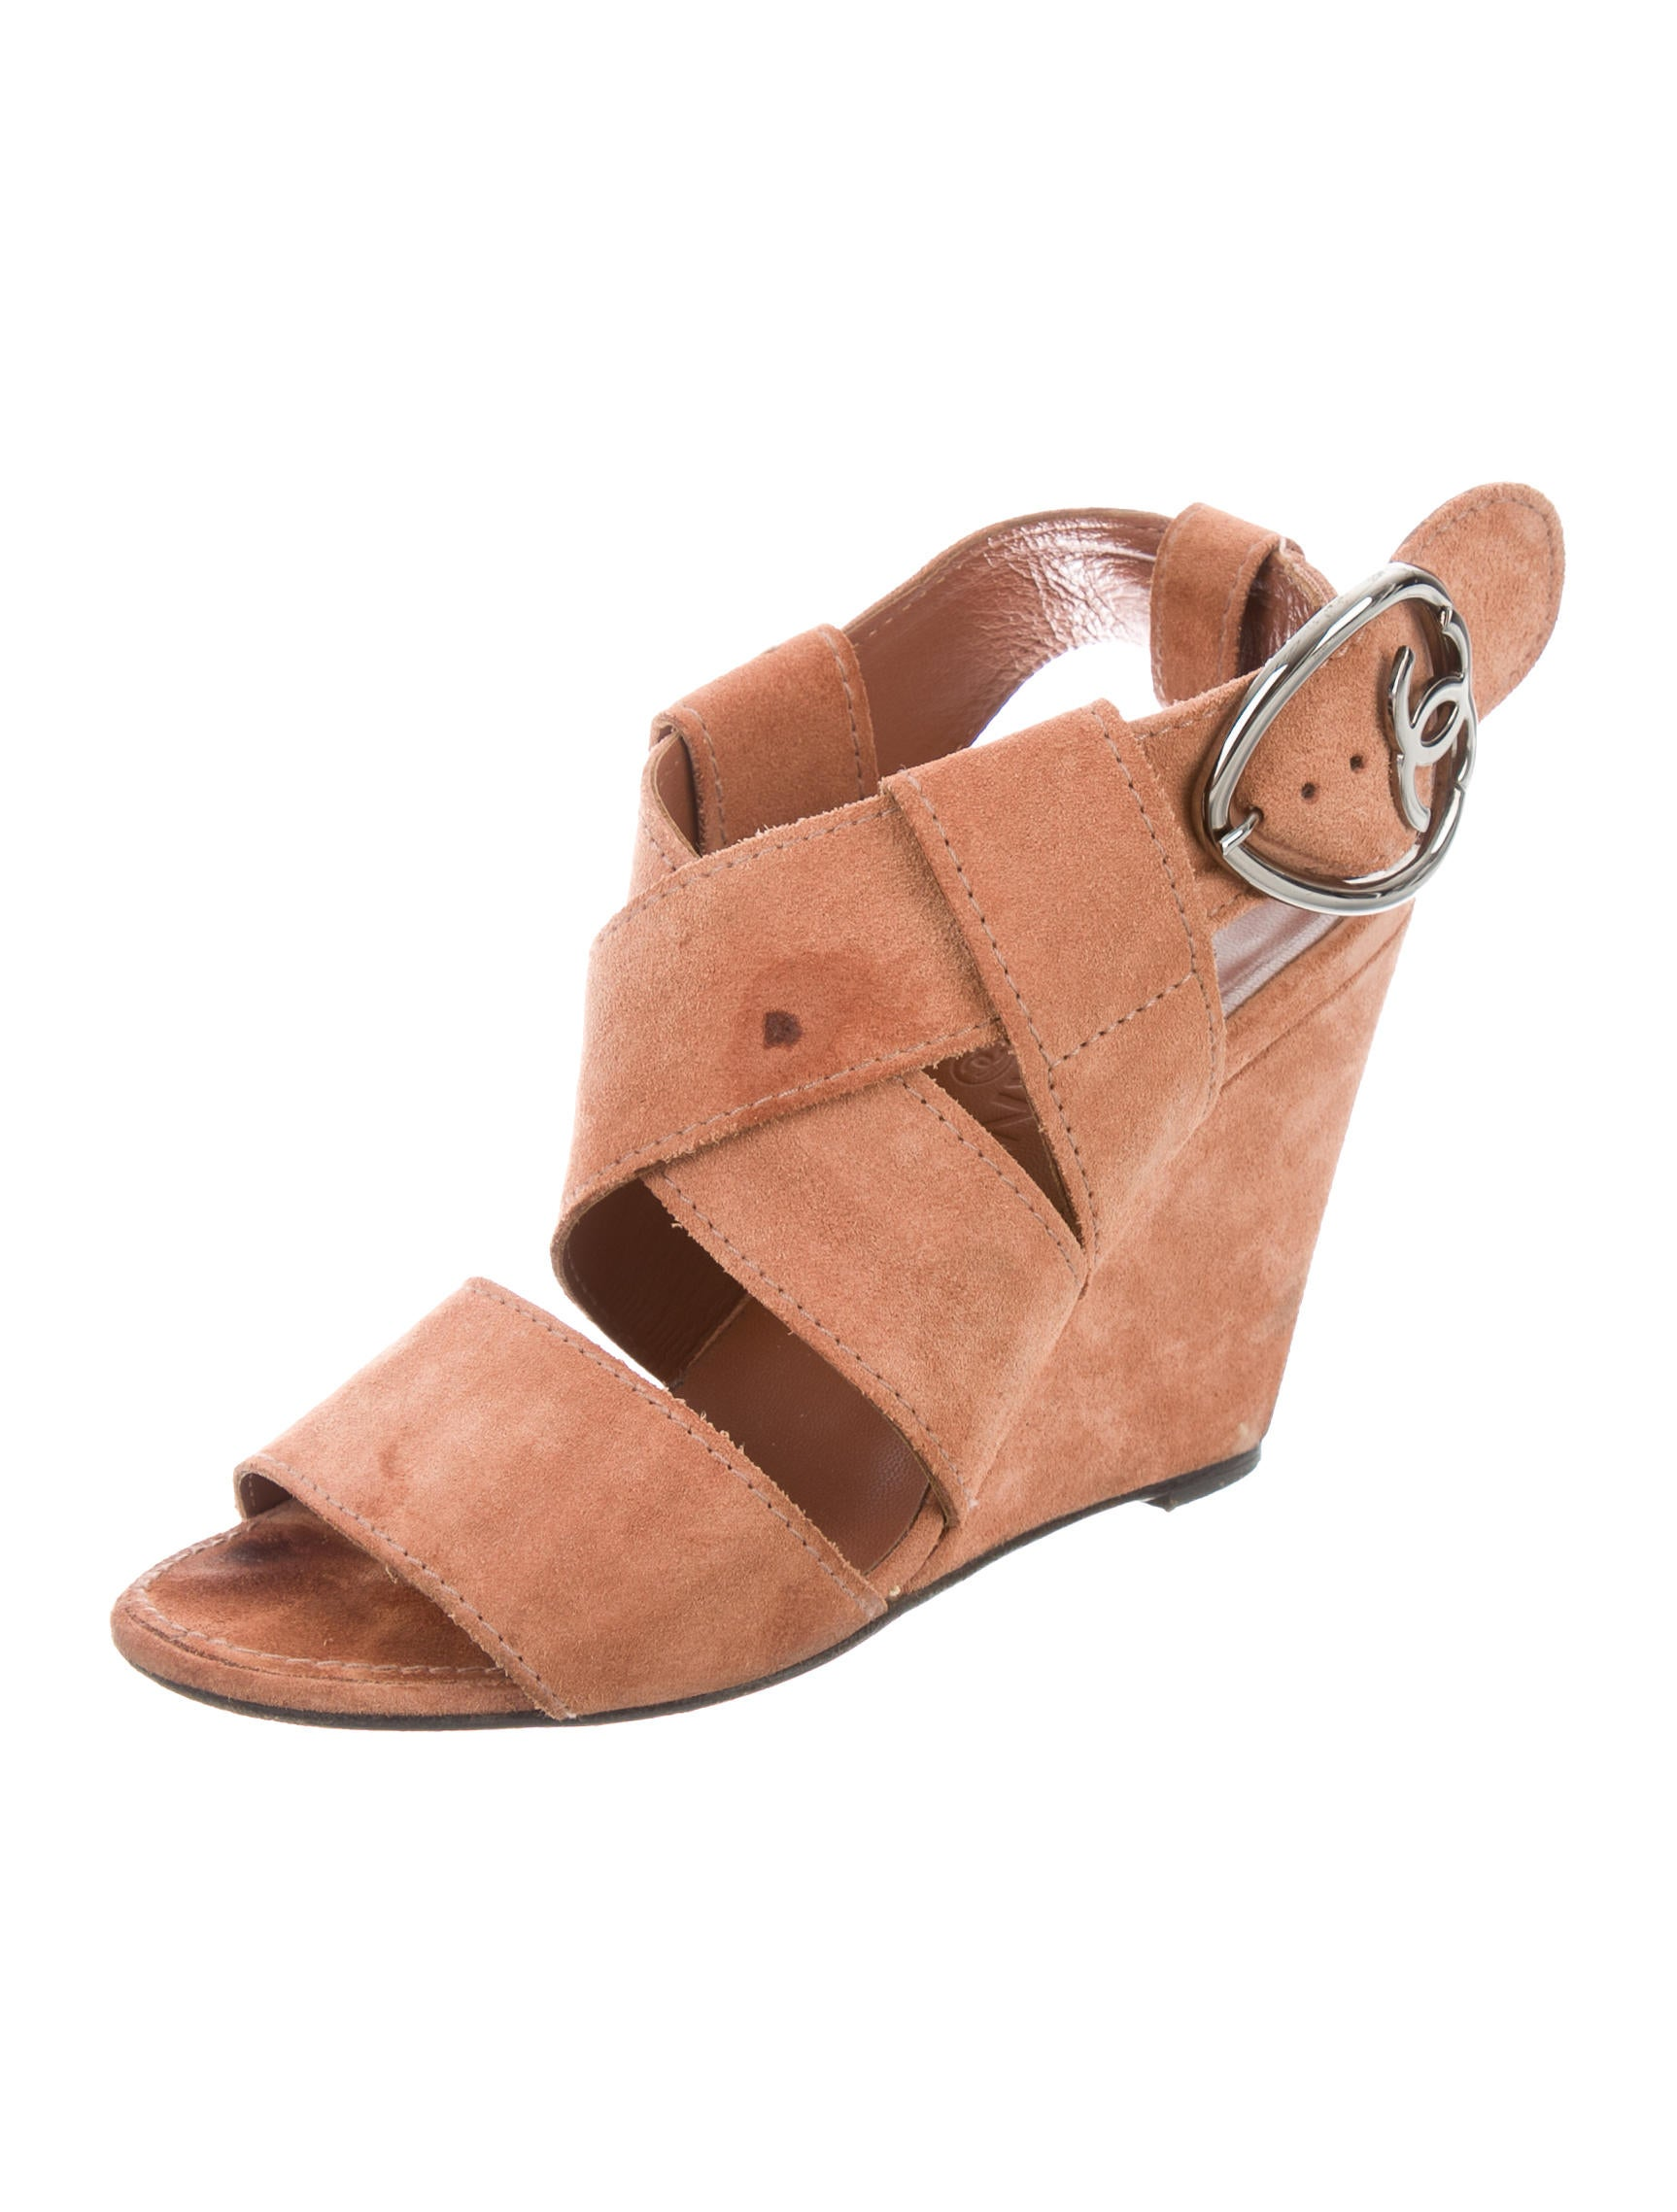 chanel suede crossover wedges shoes cha180195 the